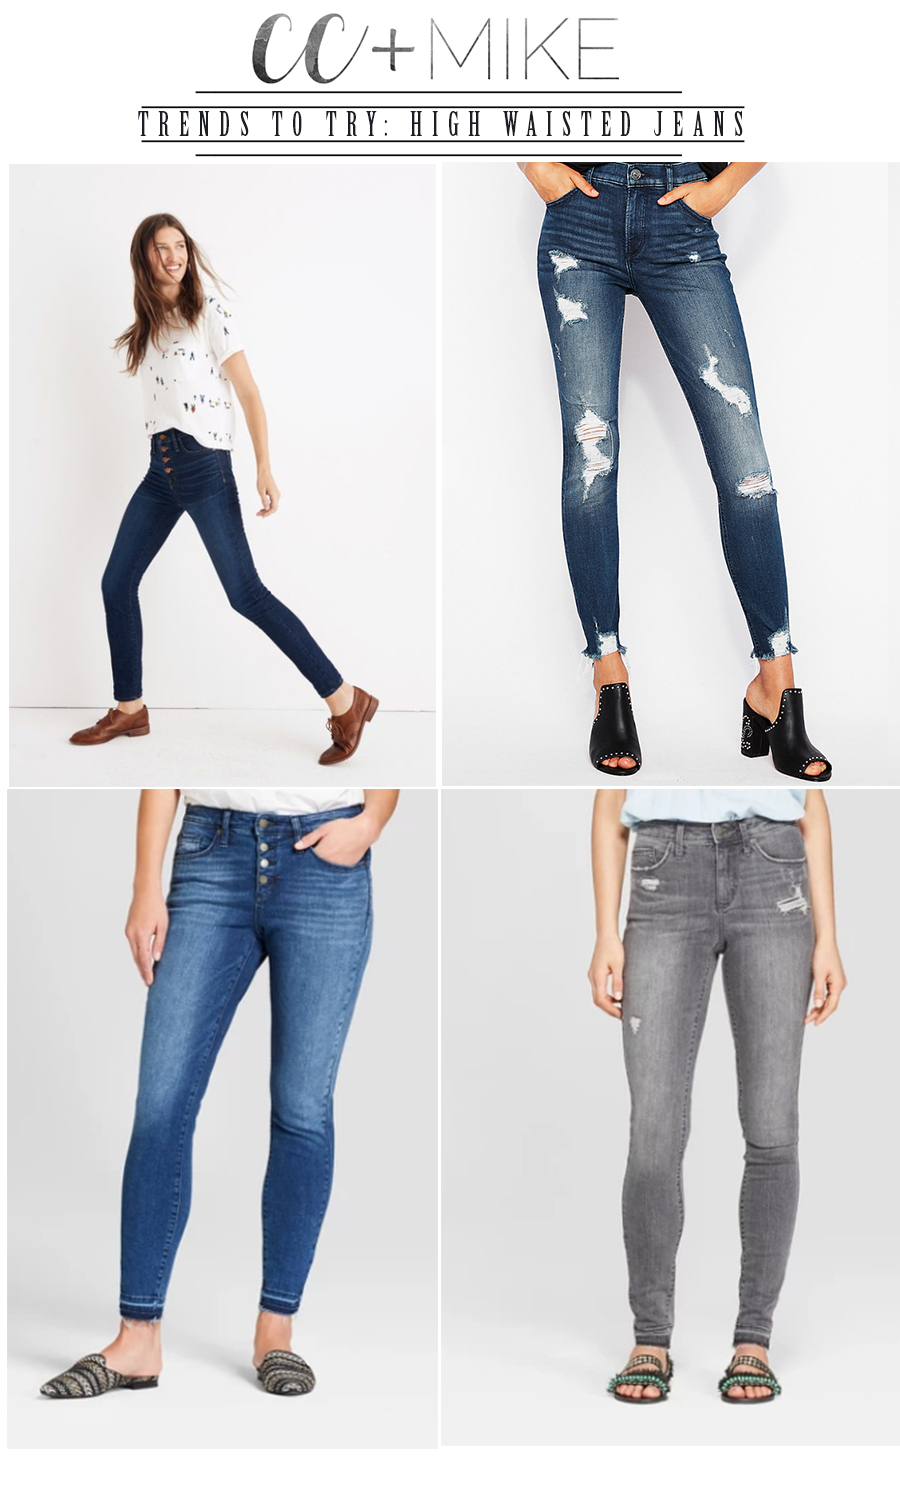 Trends to Try High Waisted Jeans